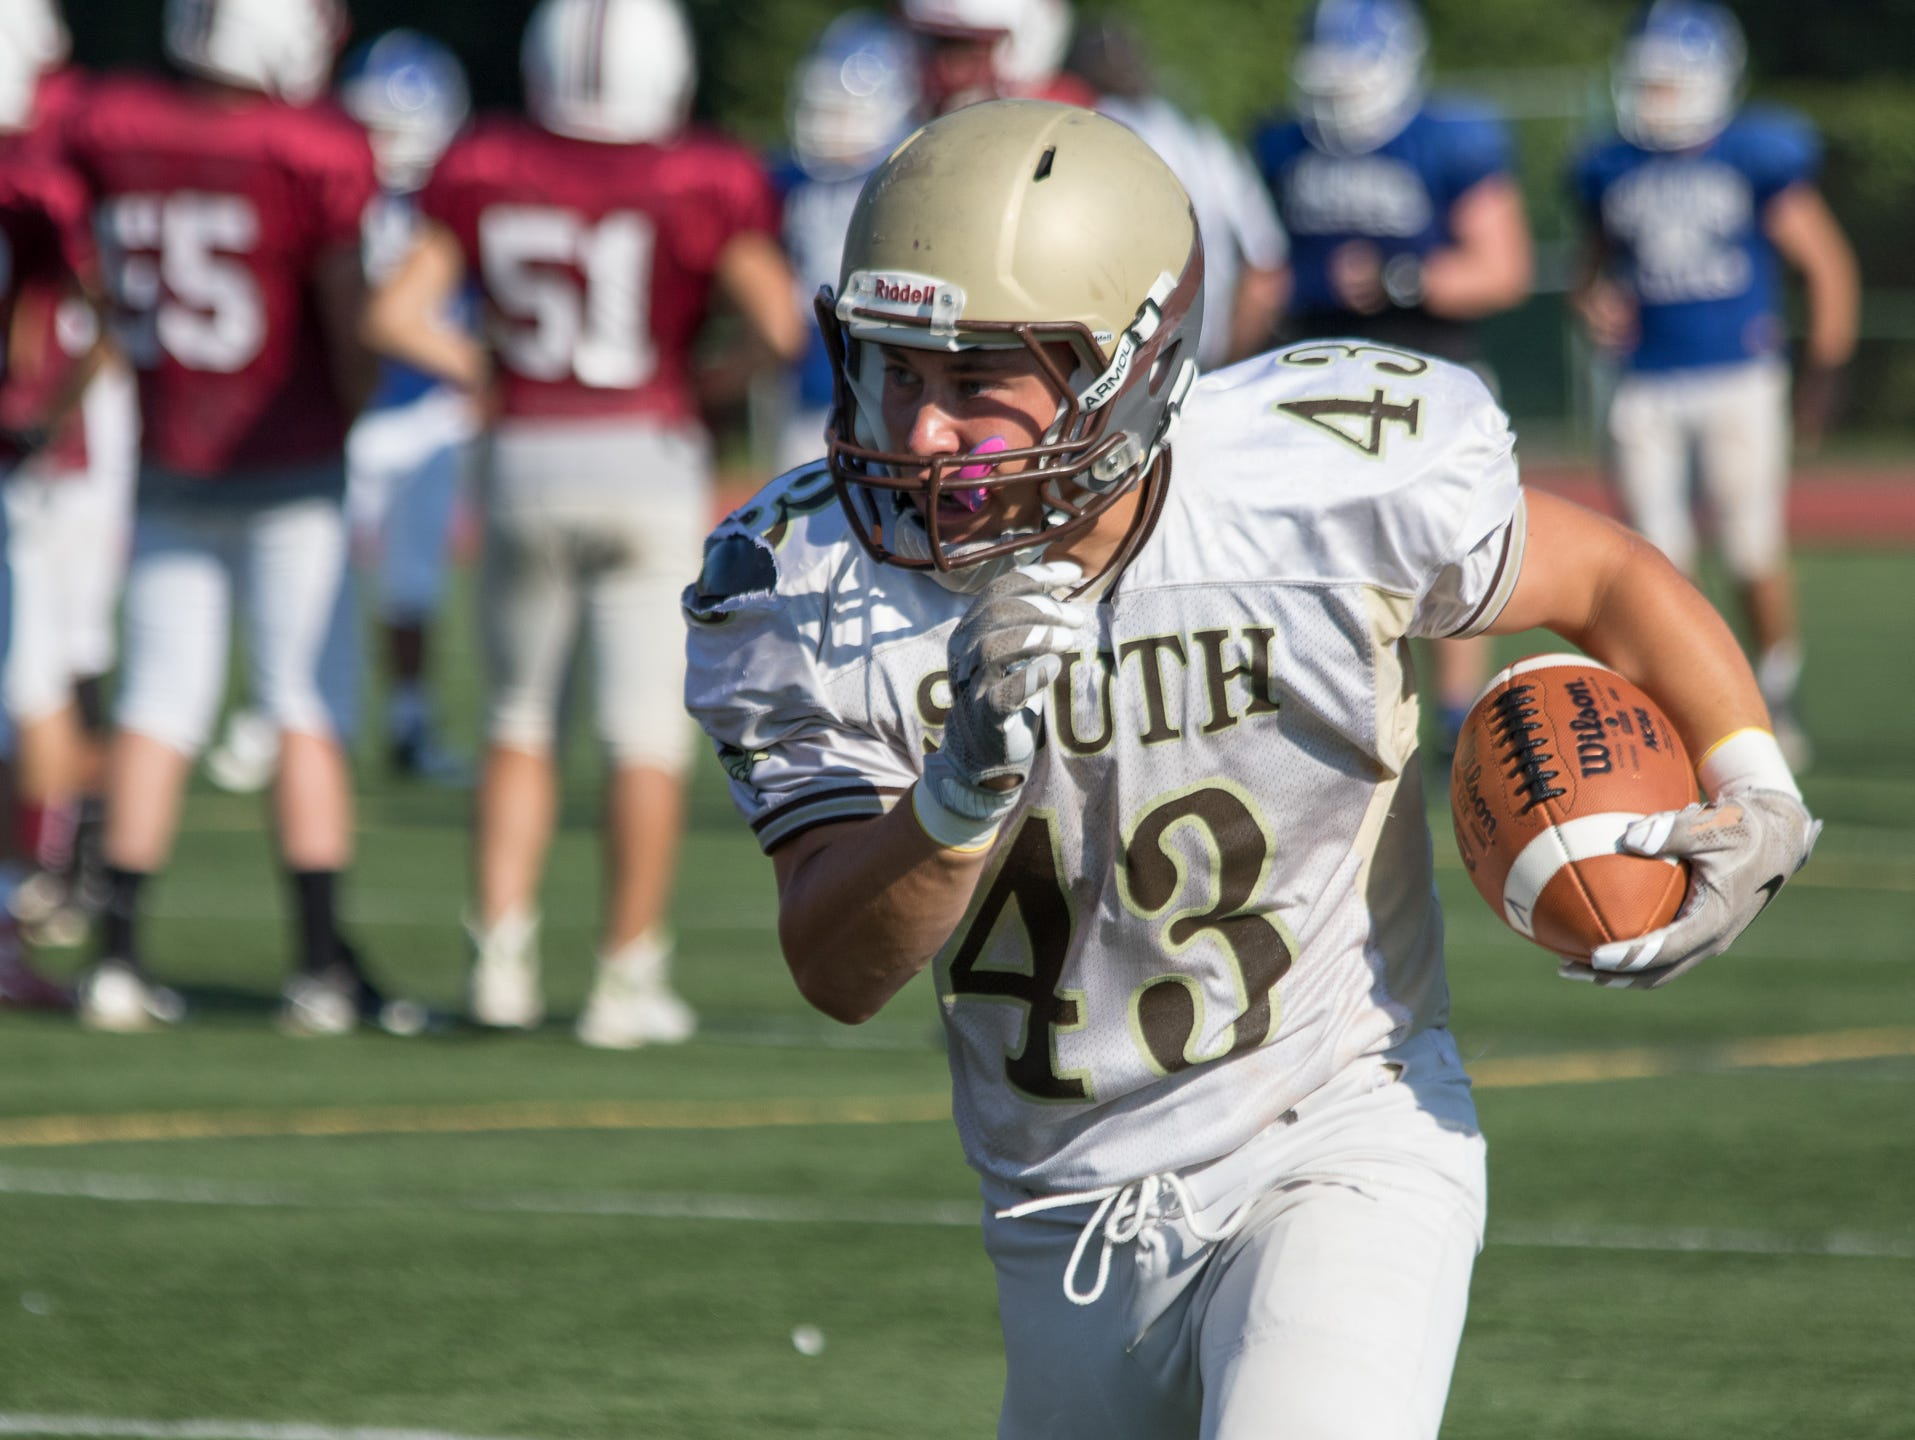 Clarkstown South's Ryan Thomas picks up yardage during a preseason scrimmage in West Nyack on Saturday. The Vikings hosted teams from Pearl River, Nyack and Fox Lane.